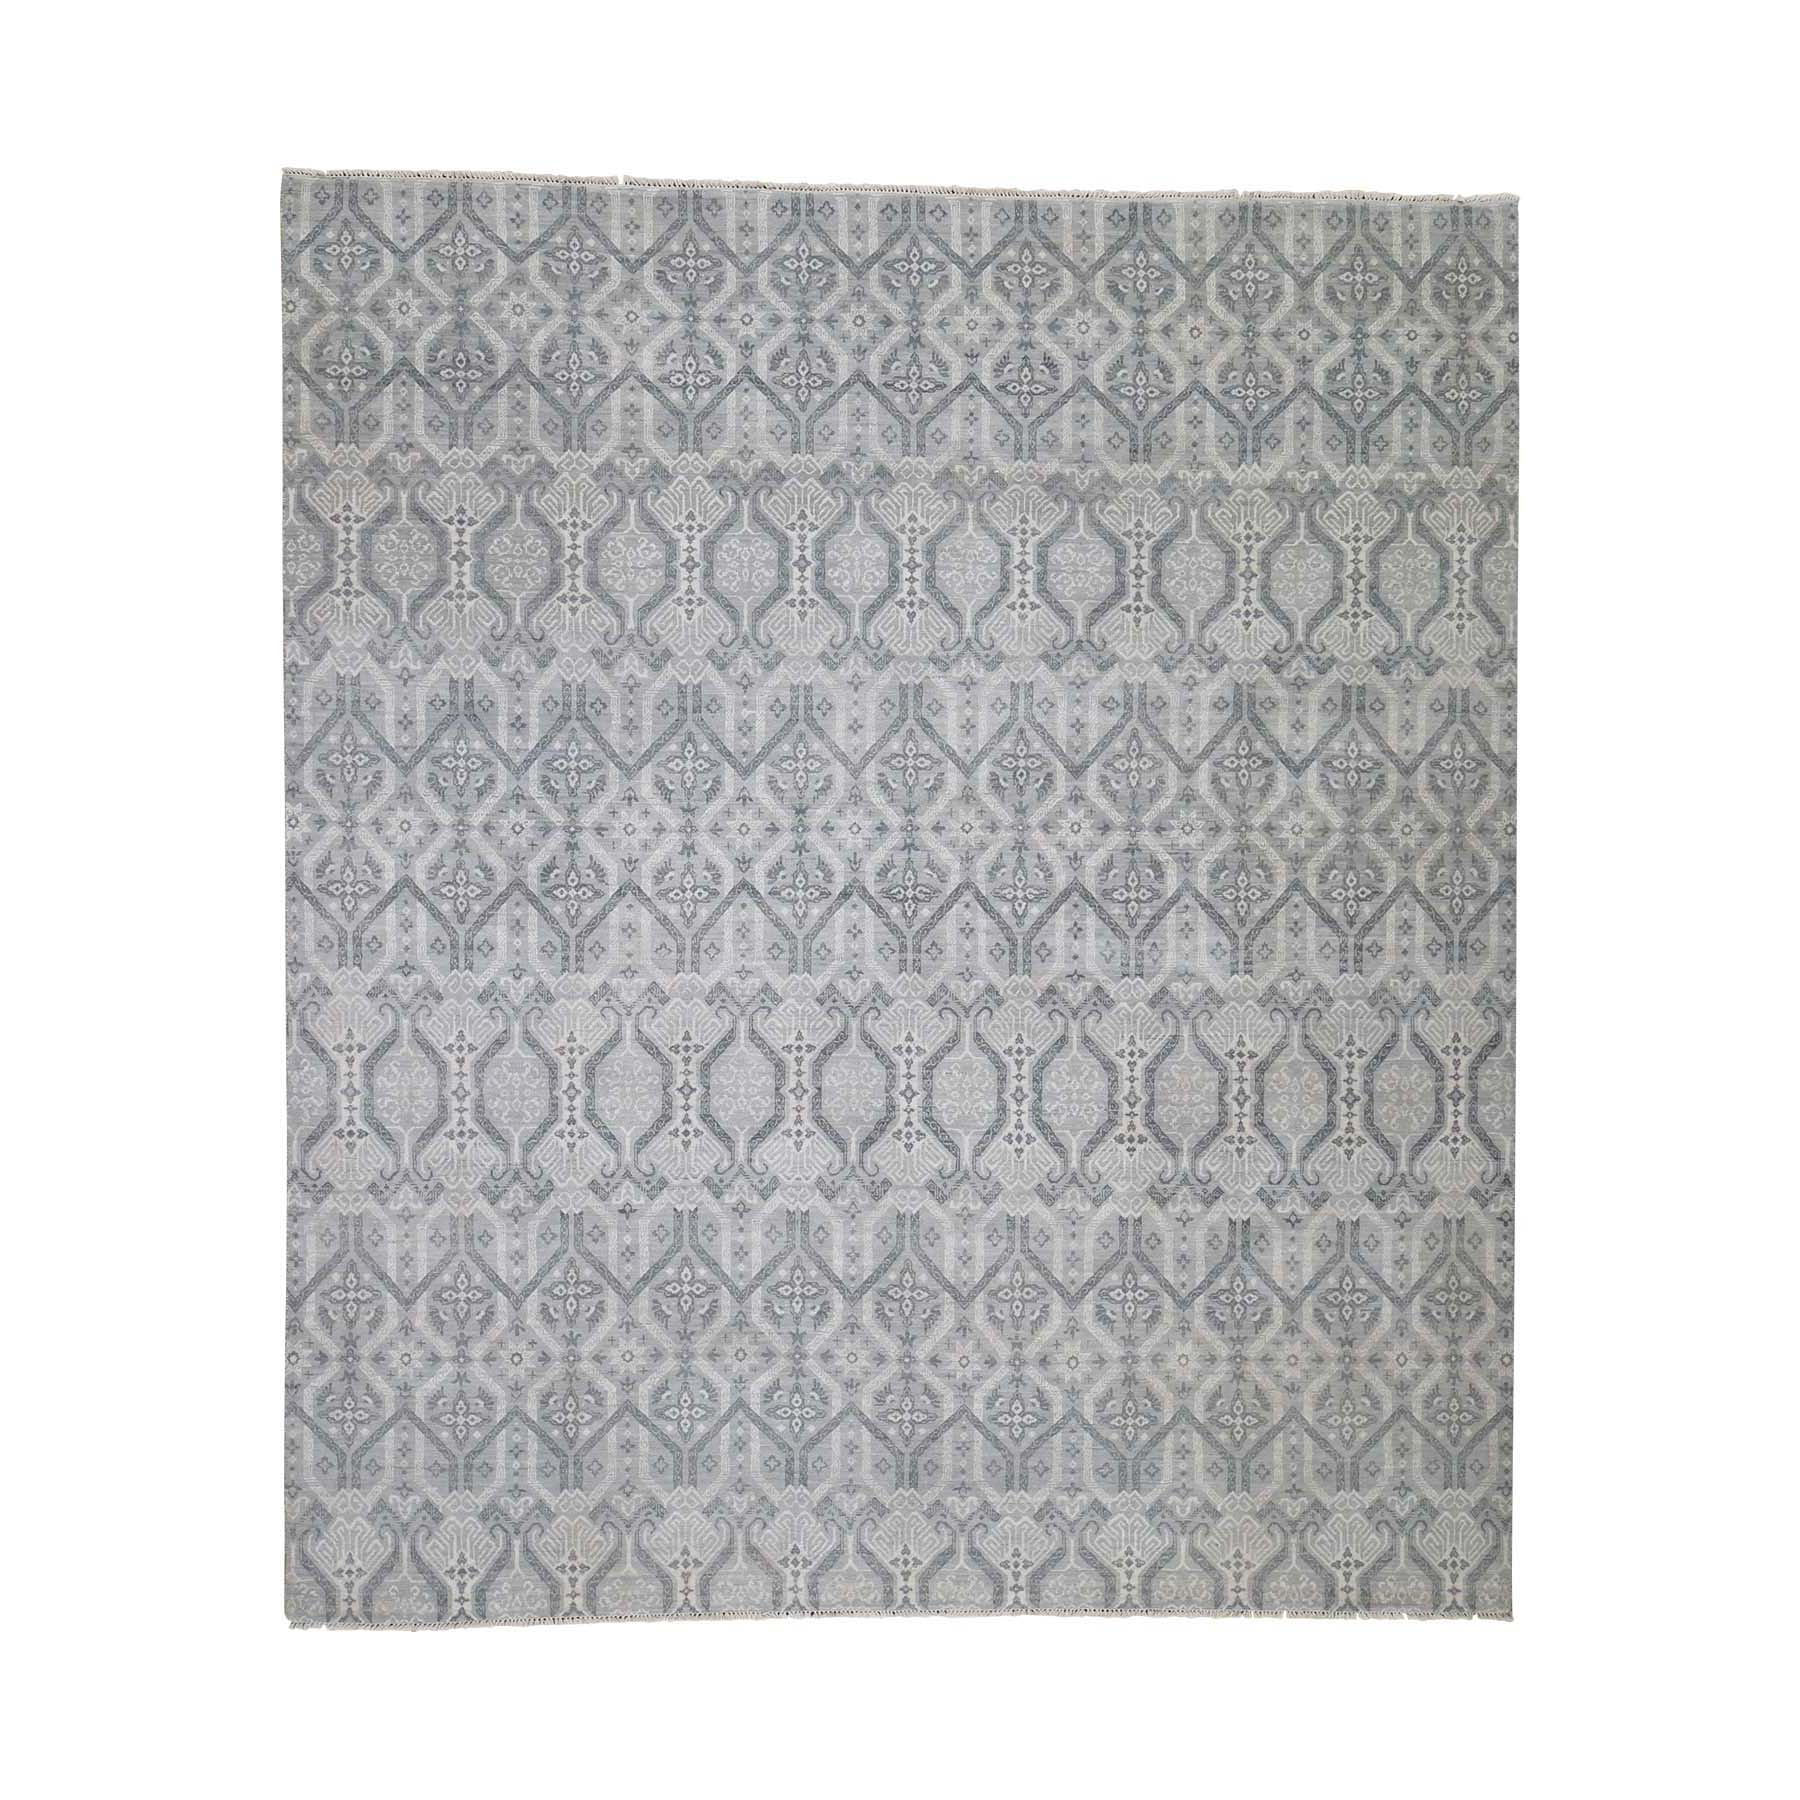 Eclectic and Bohemian Collection Hand Knotted Grey Rug No: 188664